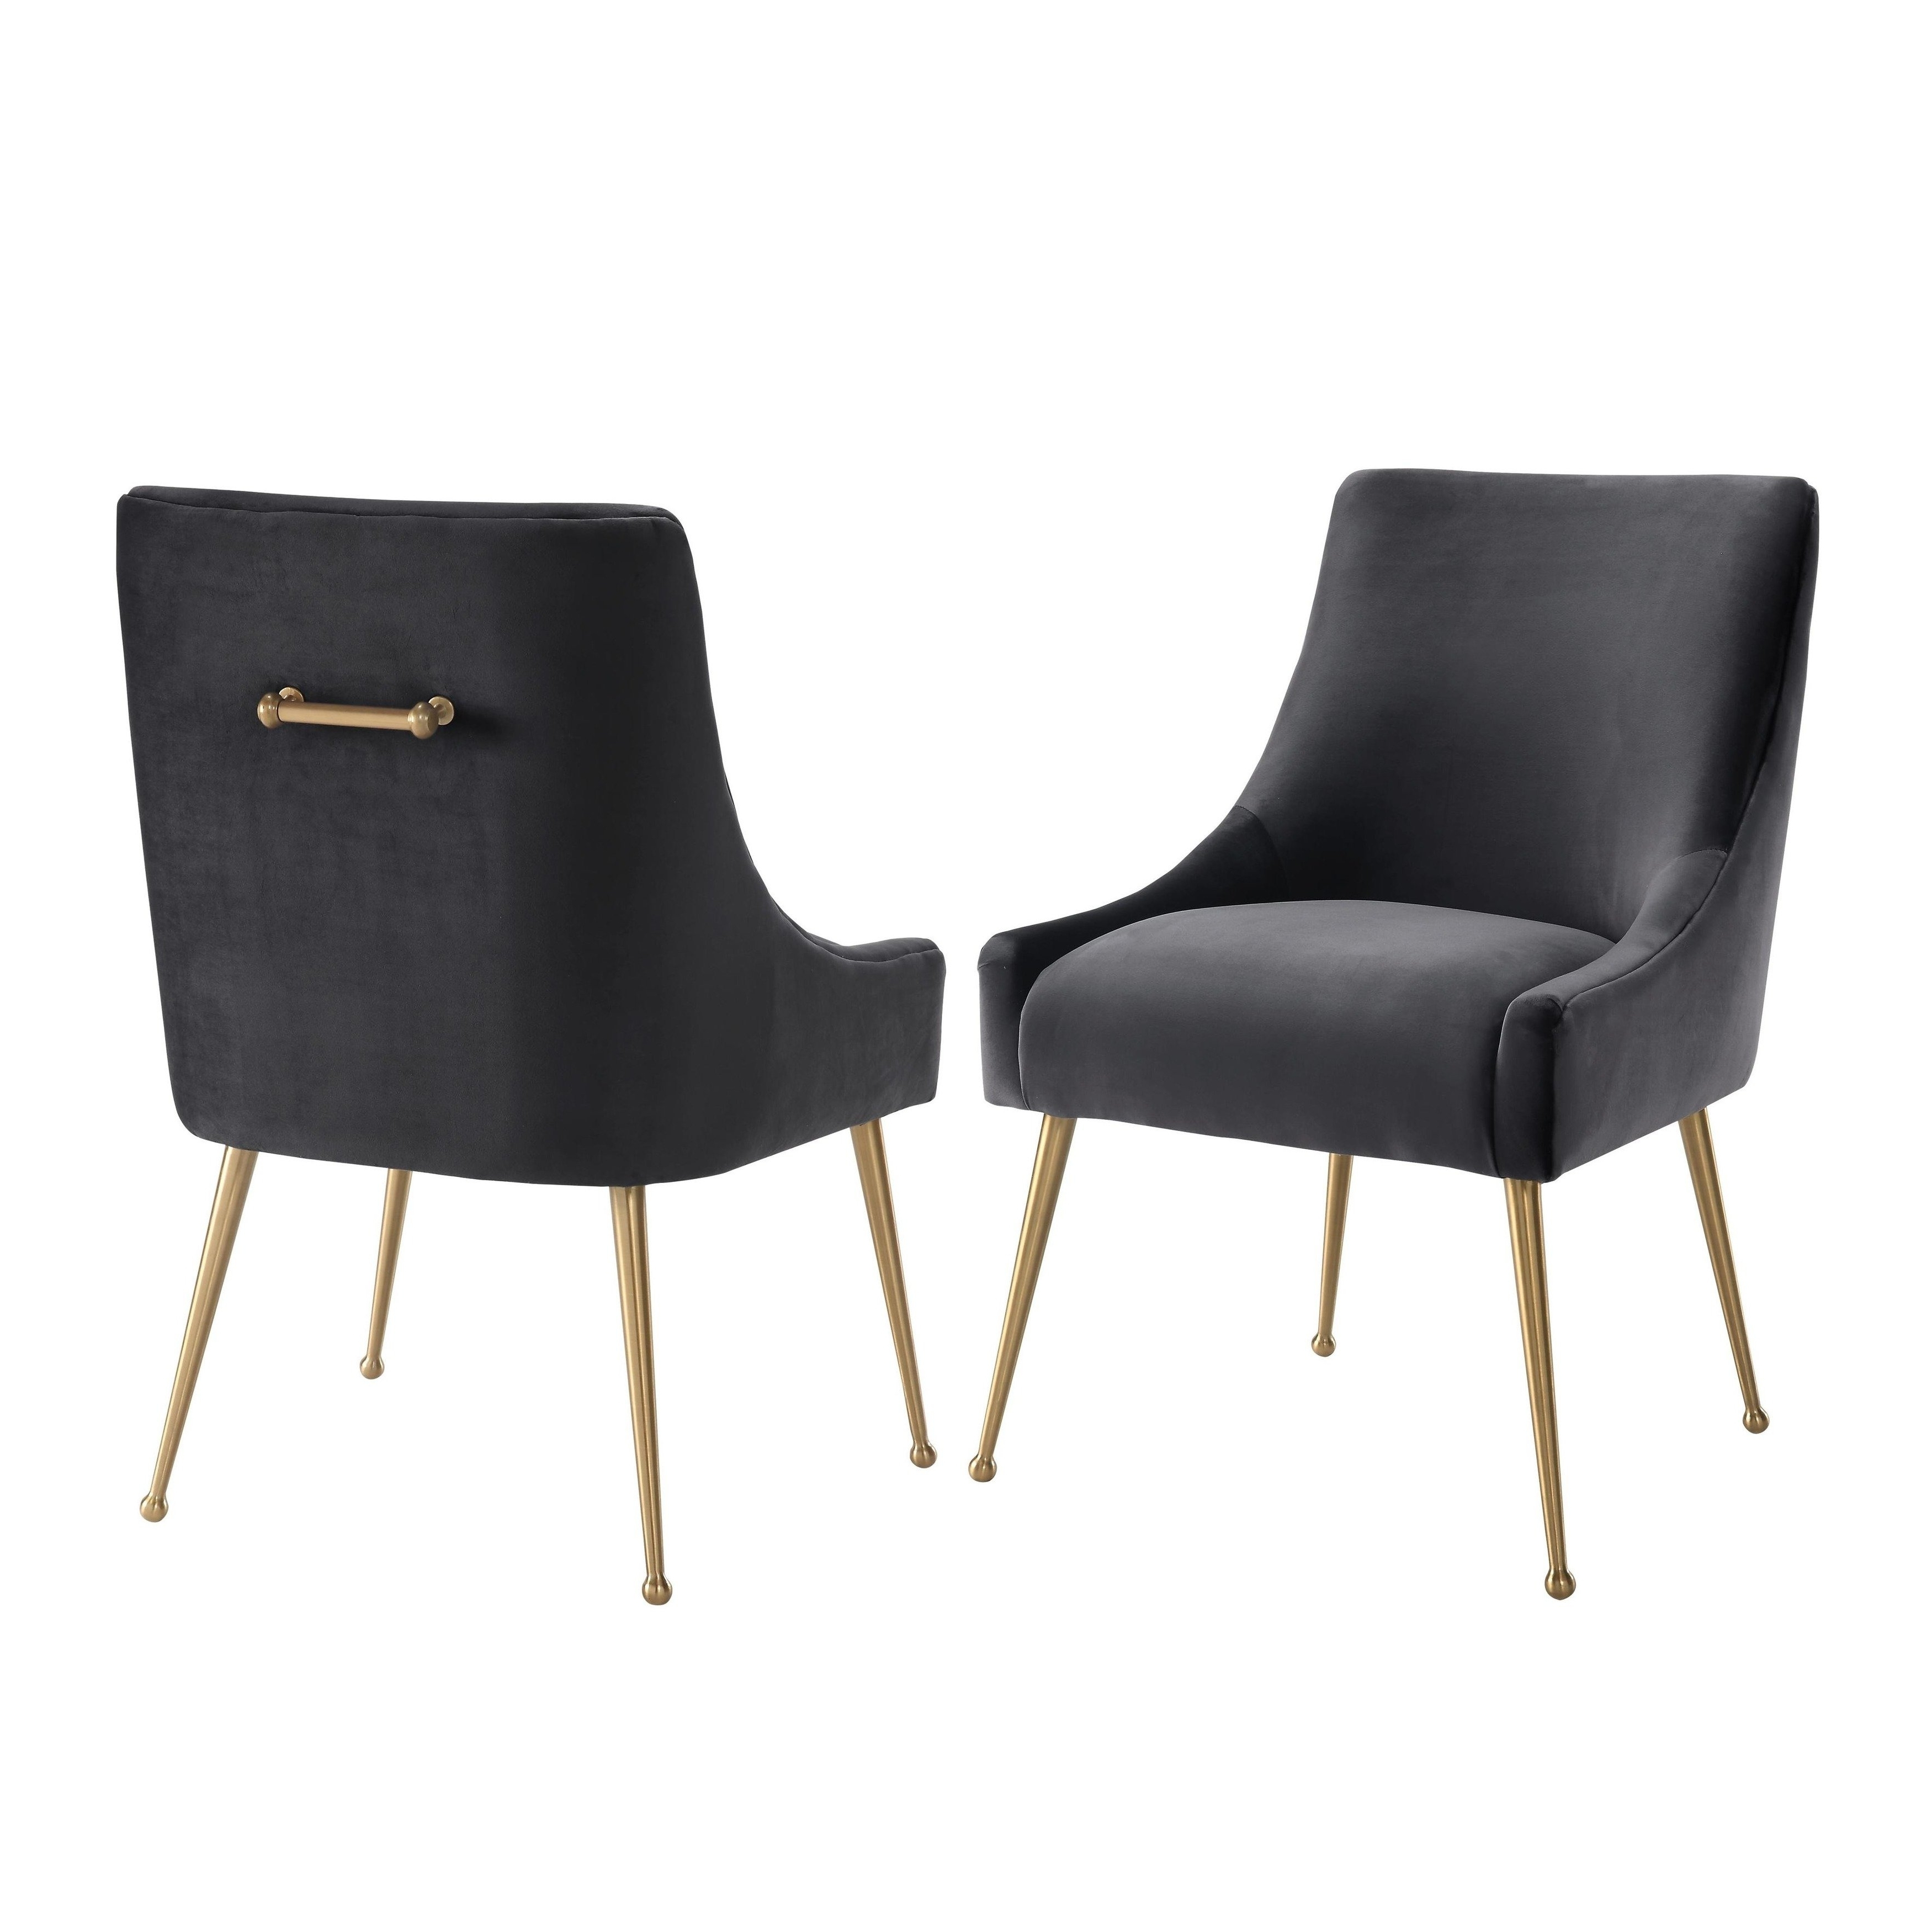 Widely Used Shop Beatrix Grey Velvet Side Chair – Free Shipping Today Intended For Pilo Grey Side Chairs (View 5 of 20)